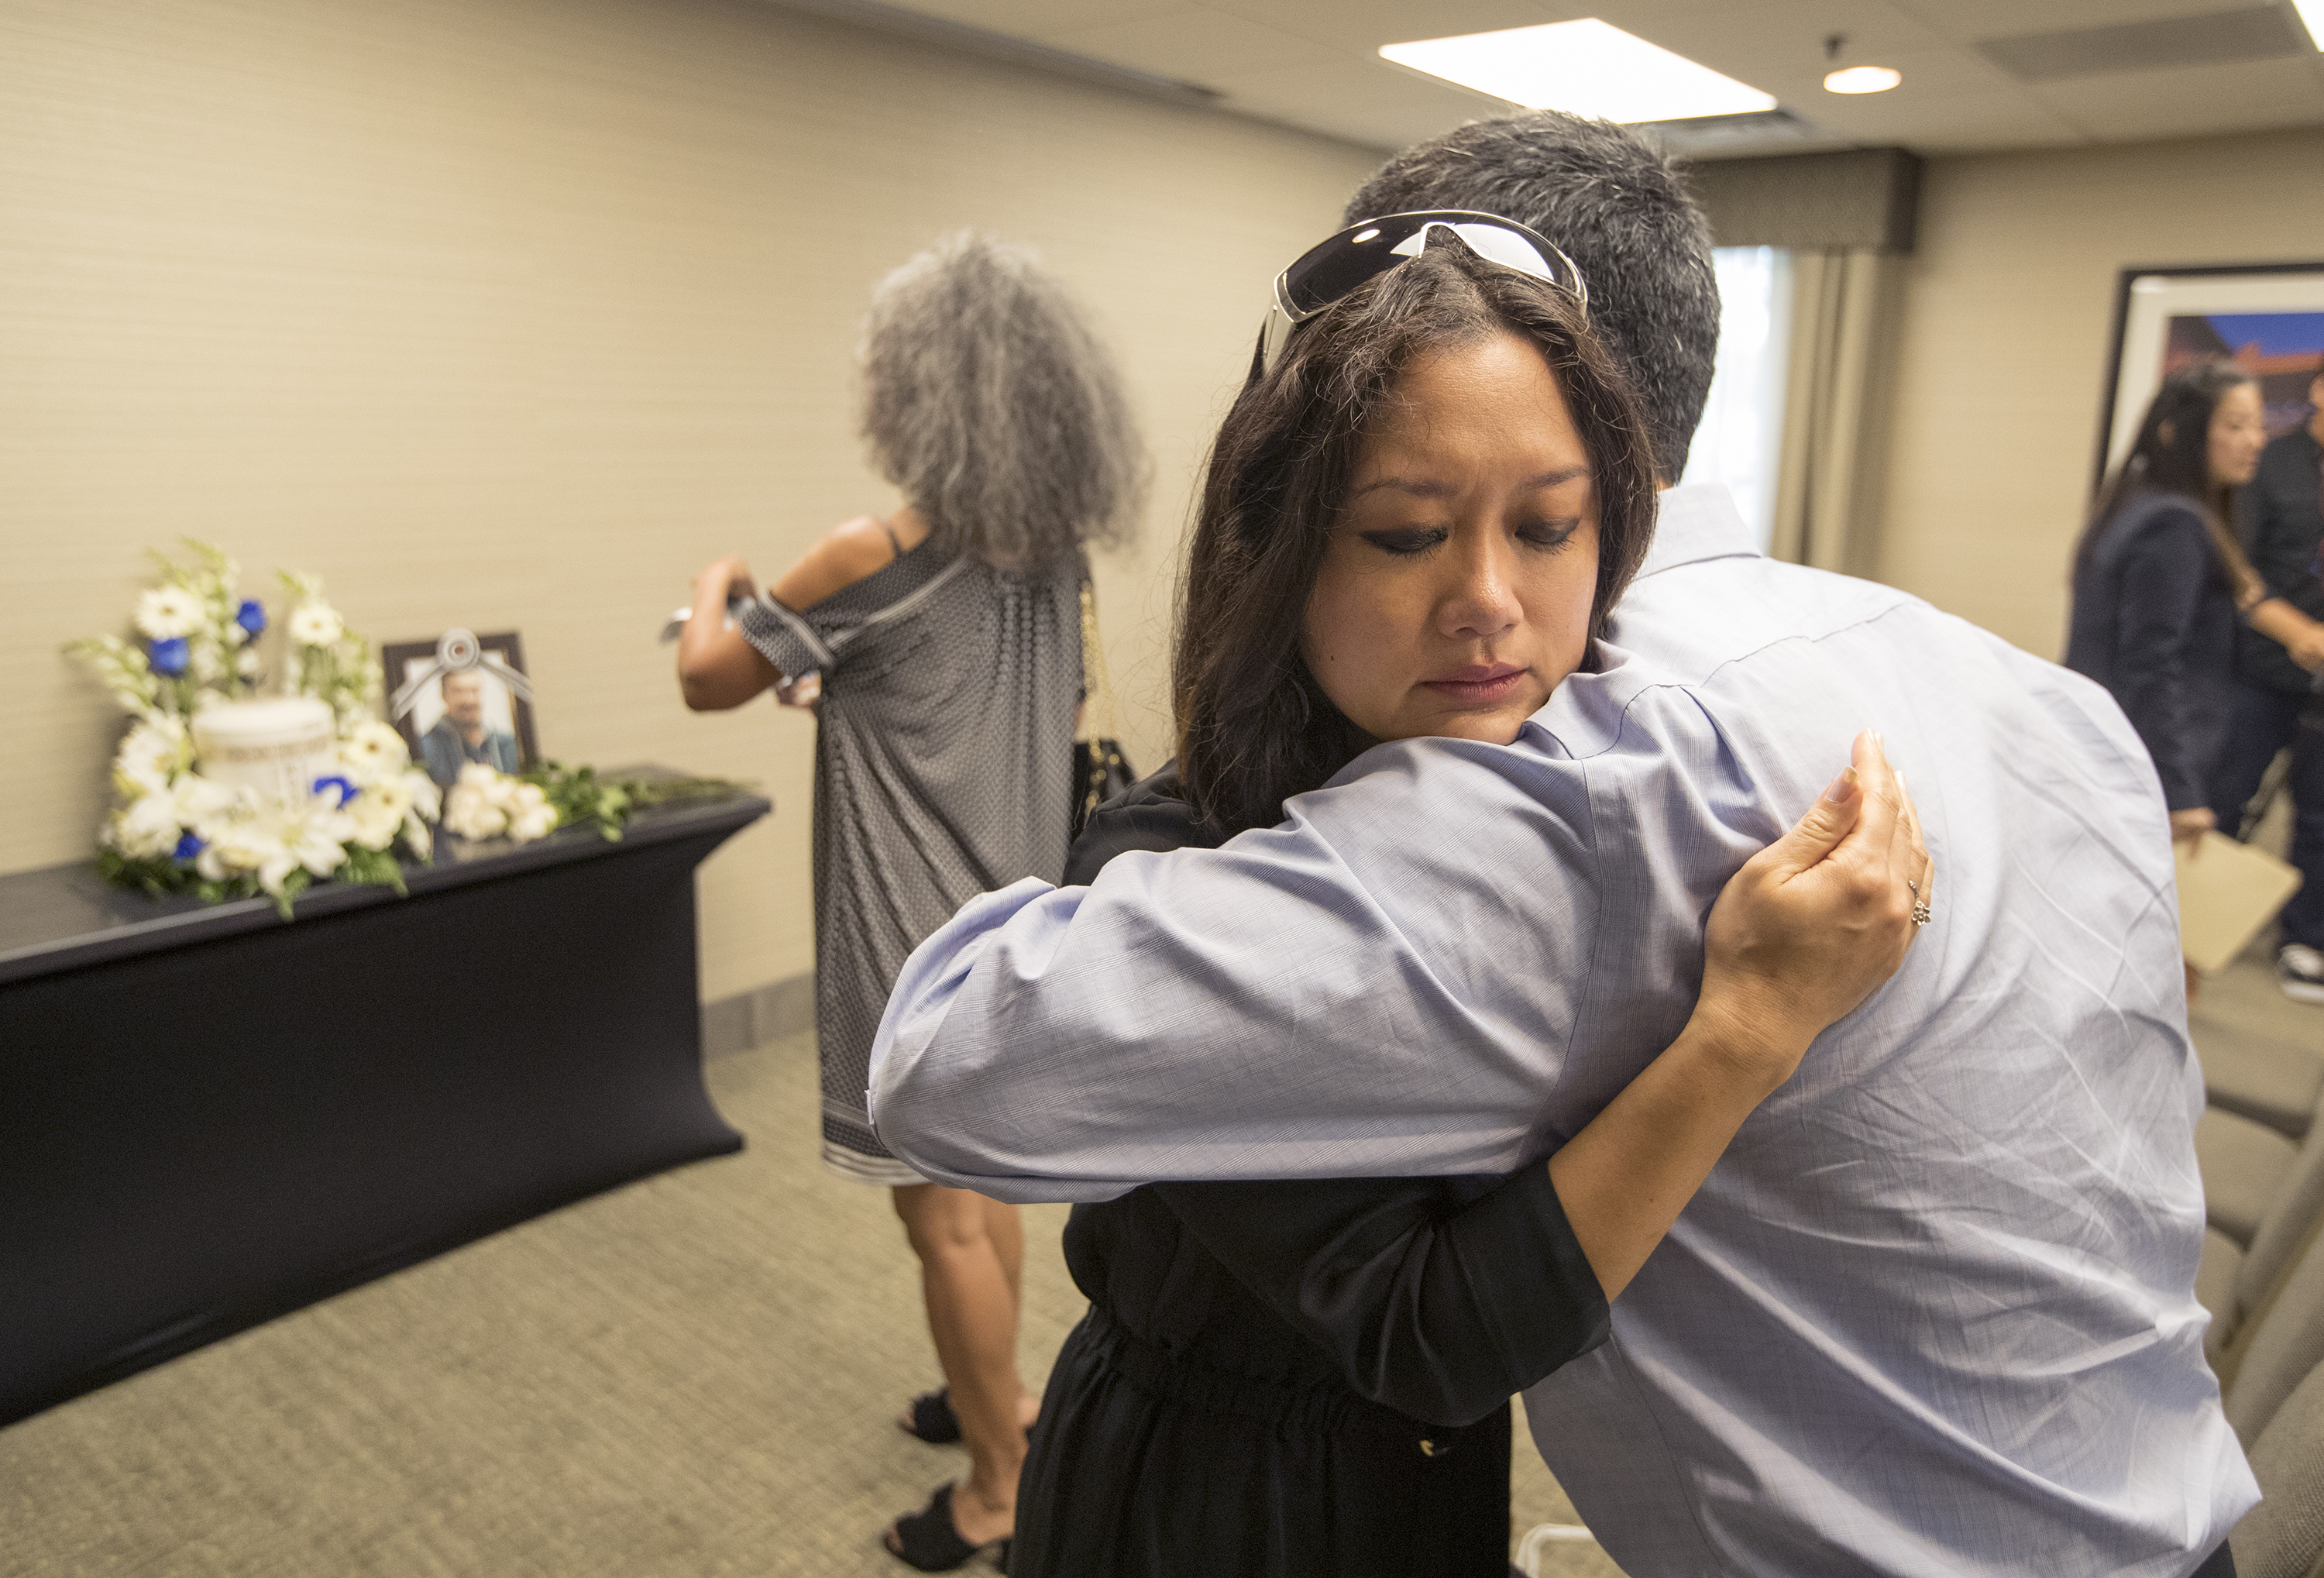 Judi Rhee Alloway, center, hugs Michael Martin, president of AKA (Also Known As), following services for Phillip Clay. Clay´s cremated remains (in background) were returned to Philadelphia, fellow Korean adoptees and friends held a memorial service in 2017.